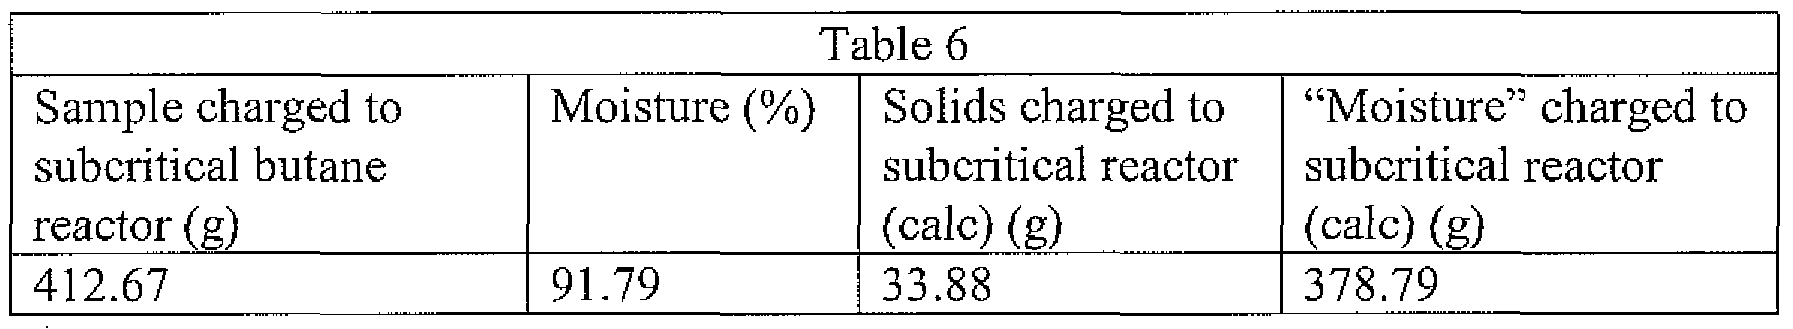 WO2009089412A1 - Subcritical and supercritical fluid